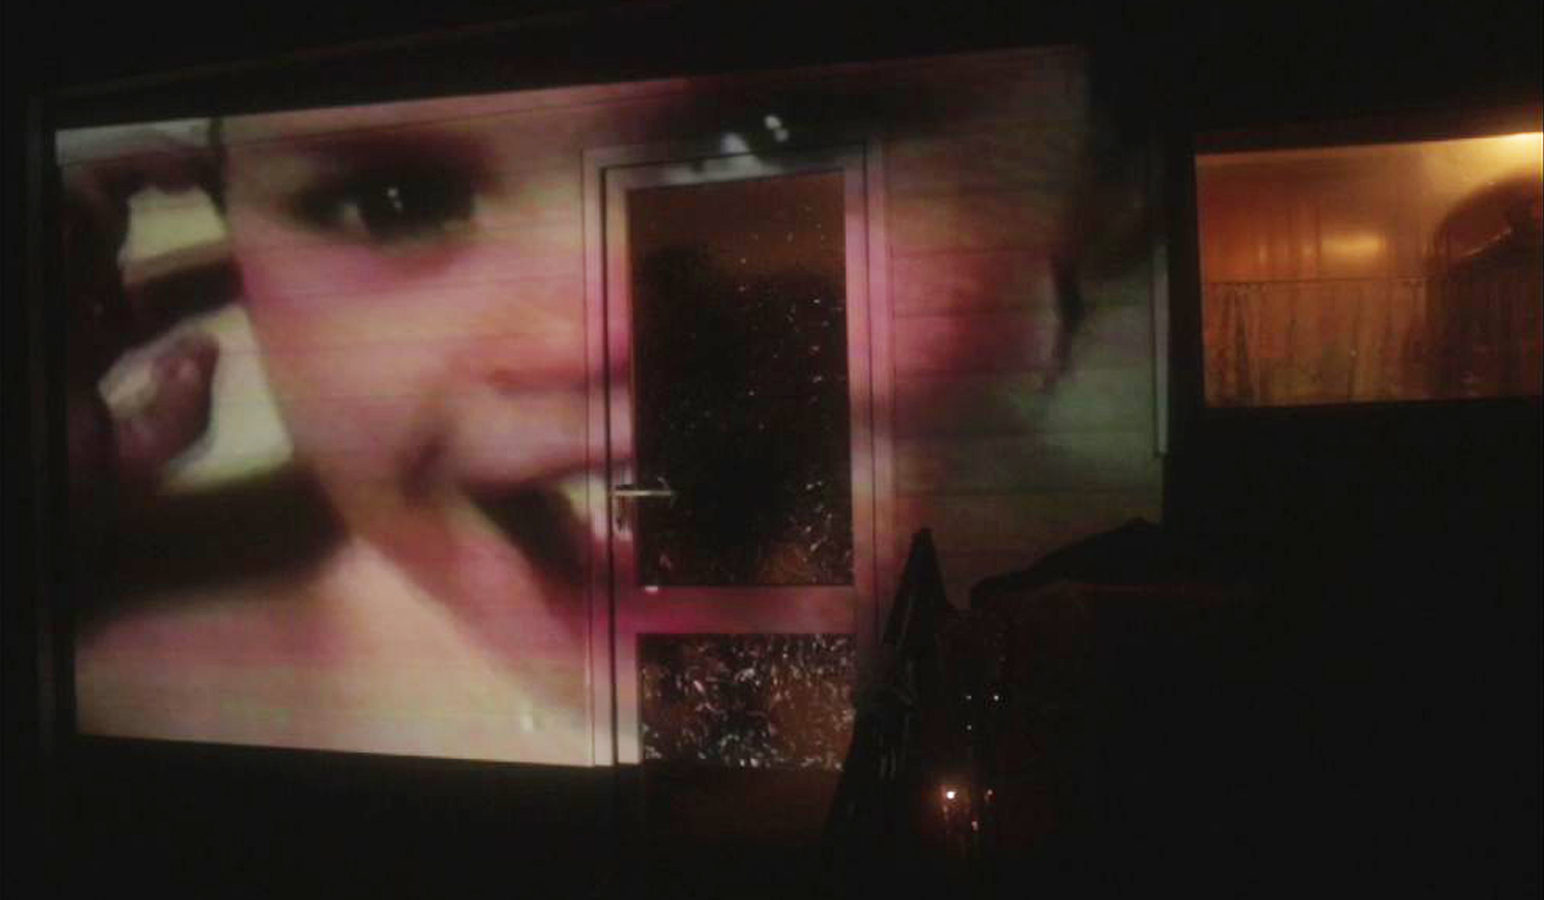 a video of a baby being projected on to a shed in a garden